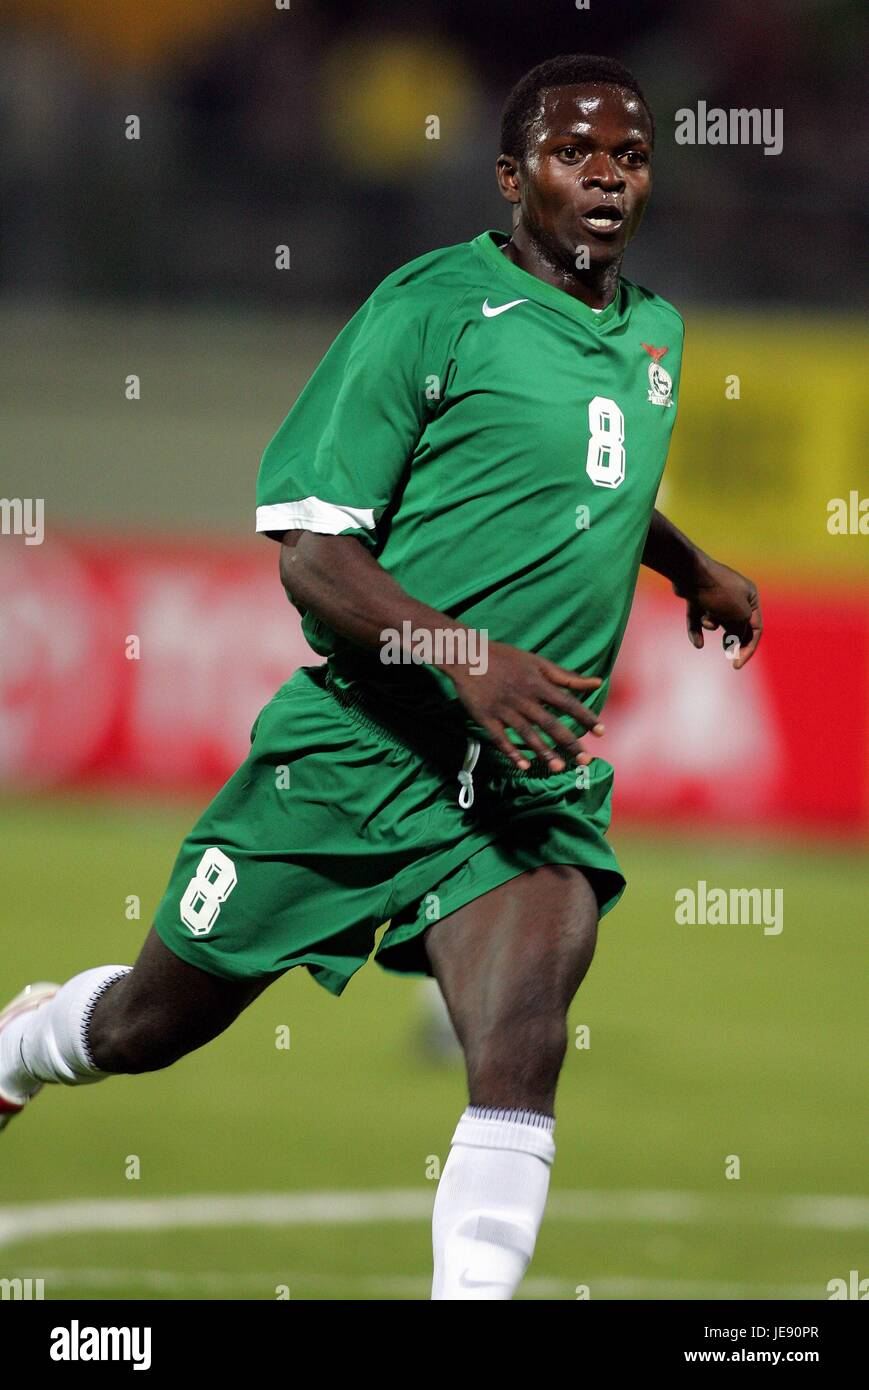 ISAAC CHANSA ZAMBIA BORDER STADIUM ALEXANDRIA EGYPT 26 January 2006 - Stock Image